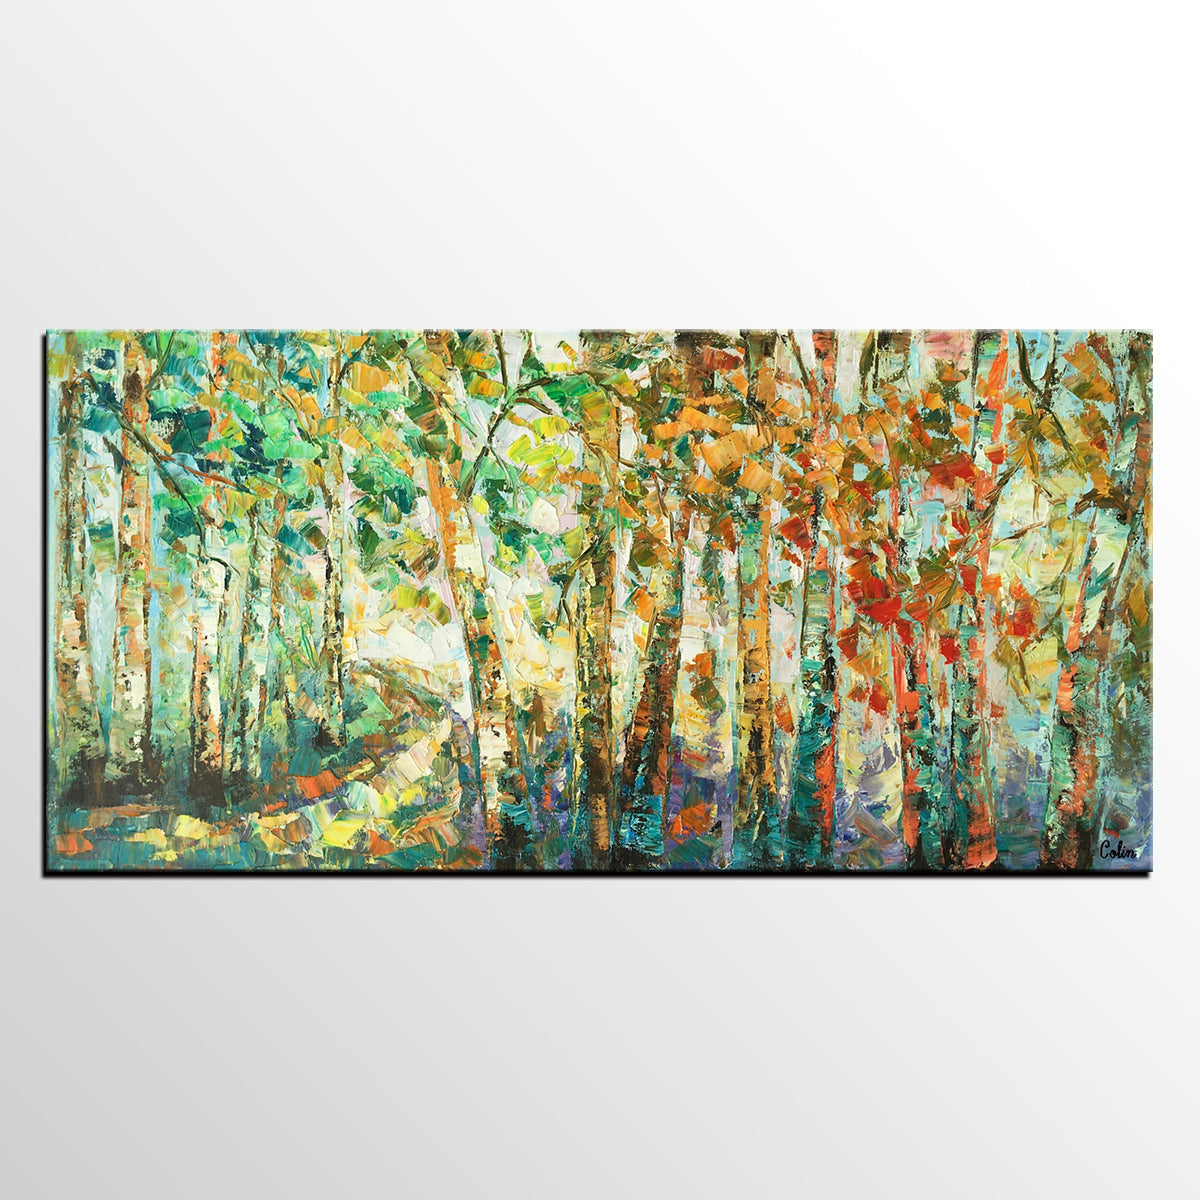 Birch Tree Painting, Abstract Painting, Original Art, Contemporary Art, Wall Art, Canvas Painting, Oil Painting